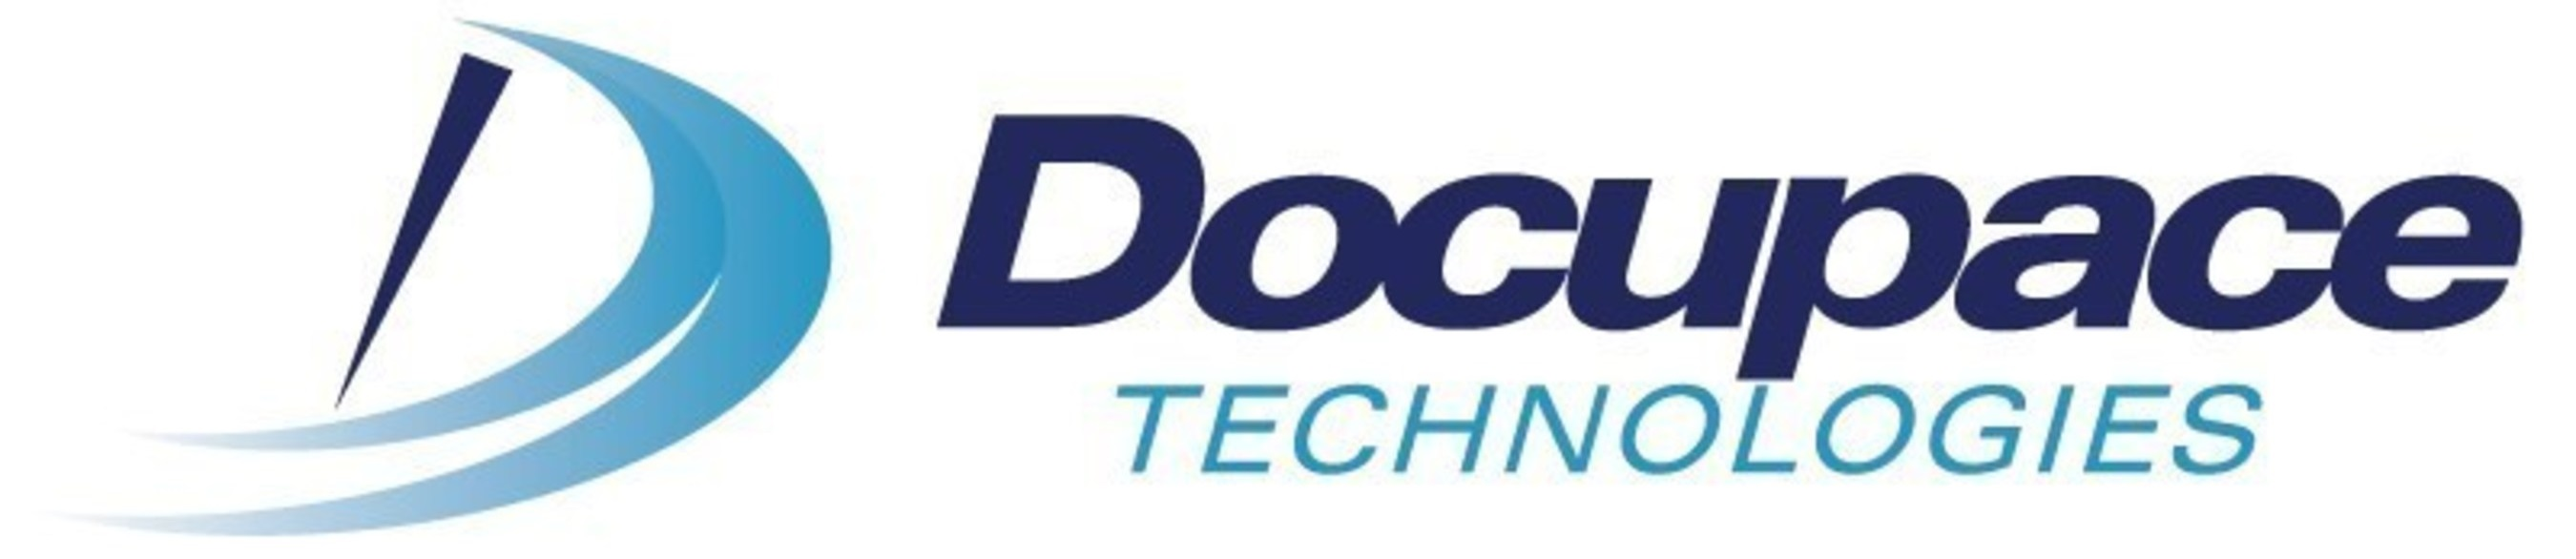 Docupace Technologies LLC